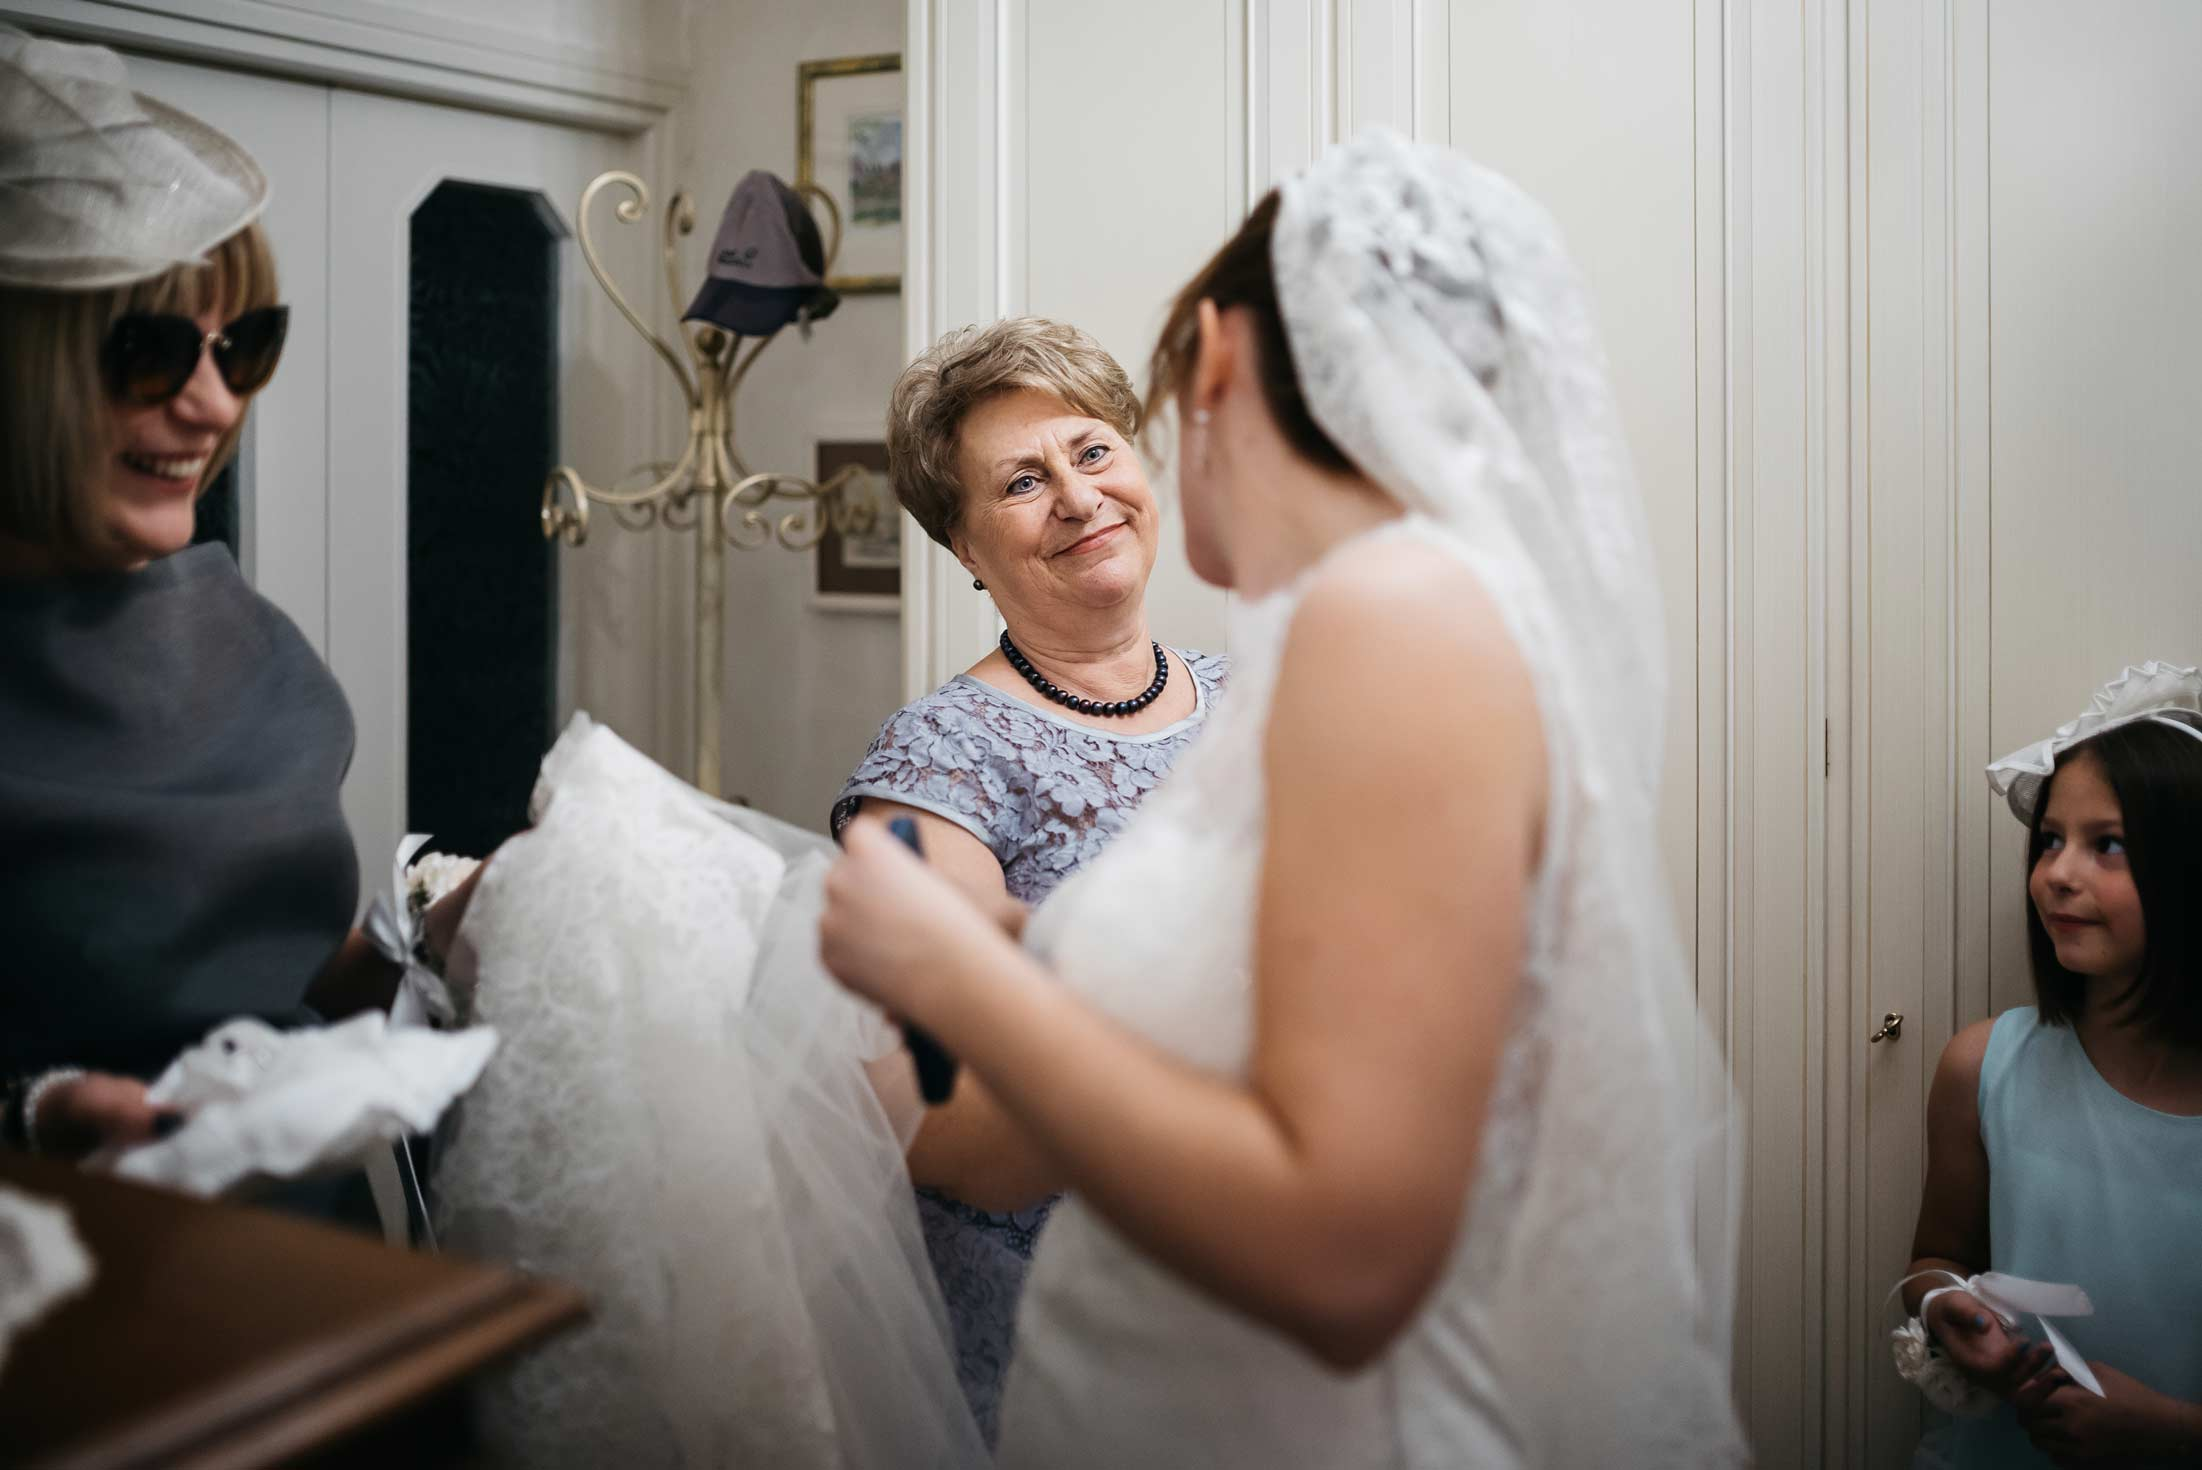 Reportage-Wedding-Photographer-1-Bride